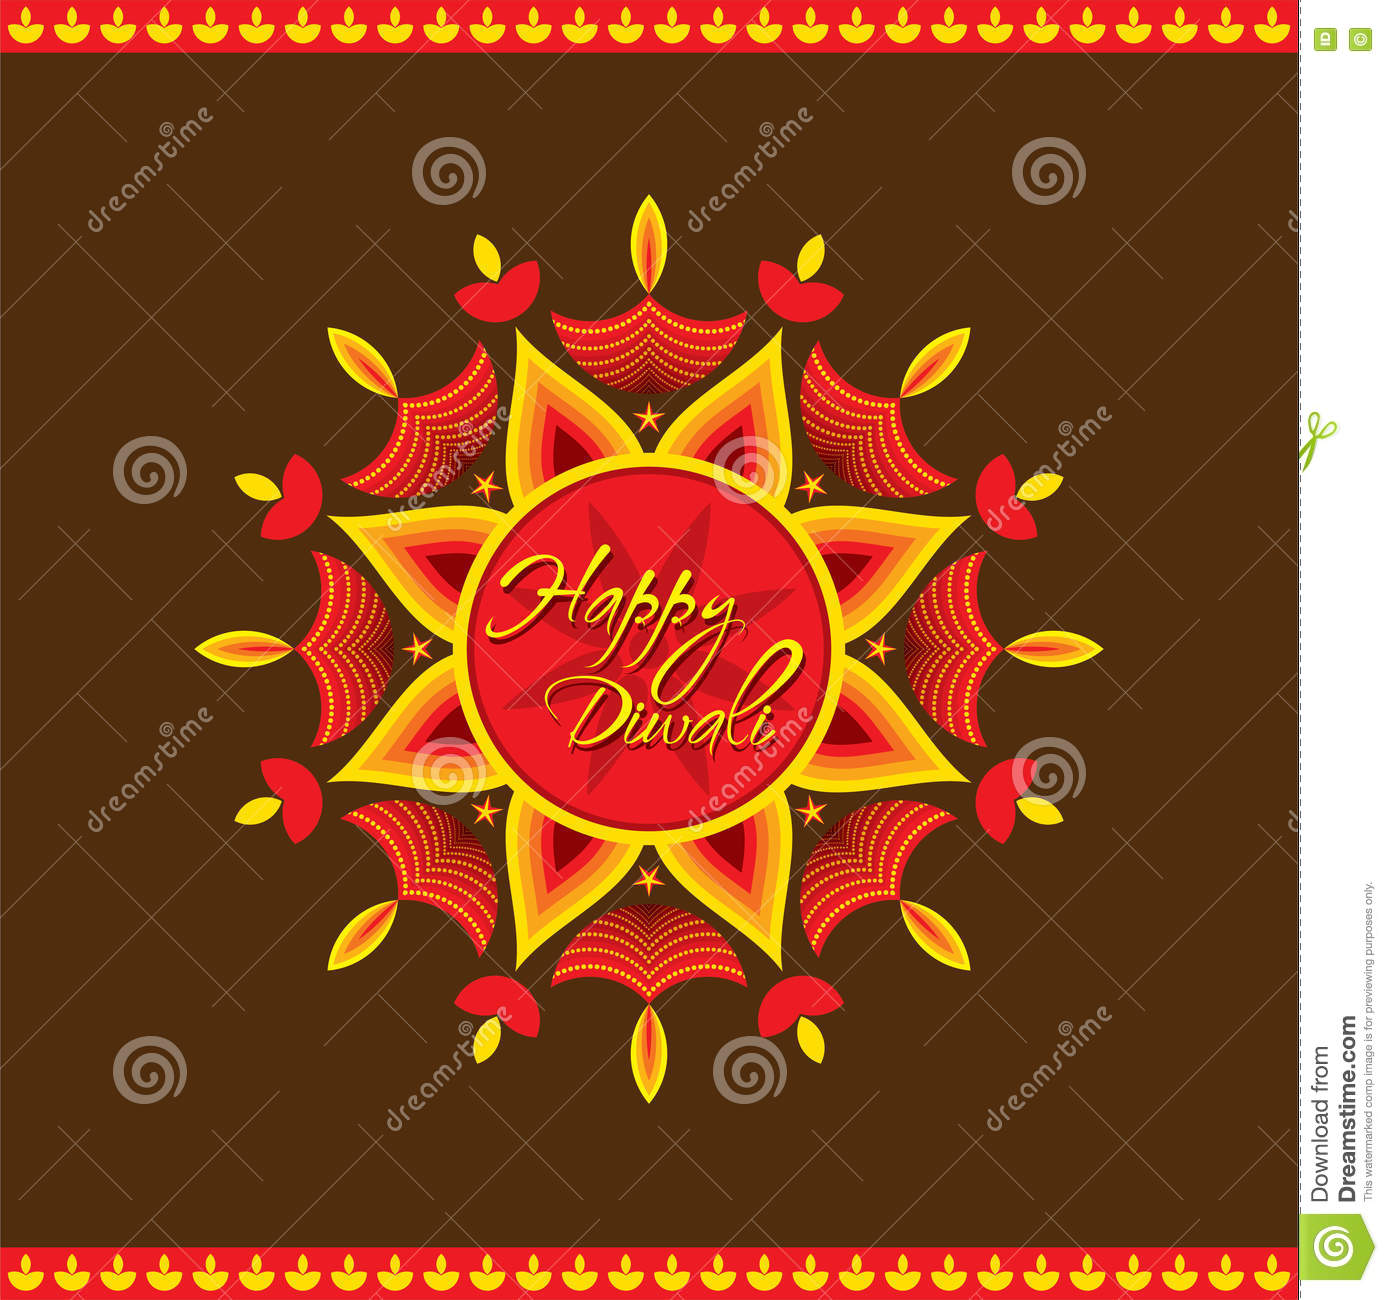 Happy Diwali Greeting Card Design Stock Vector Illustration Of